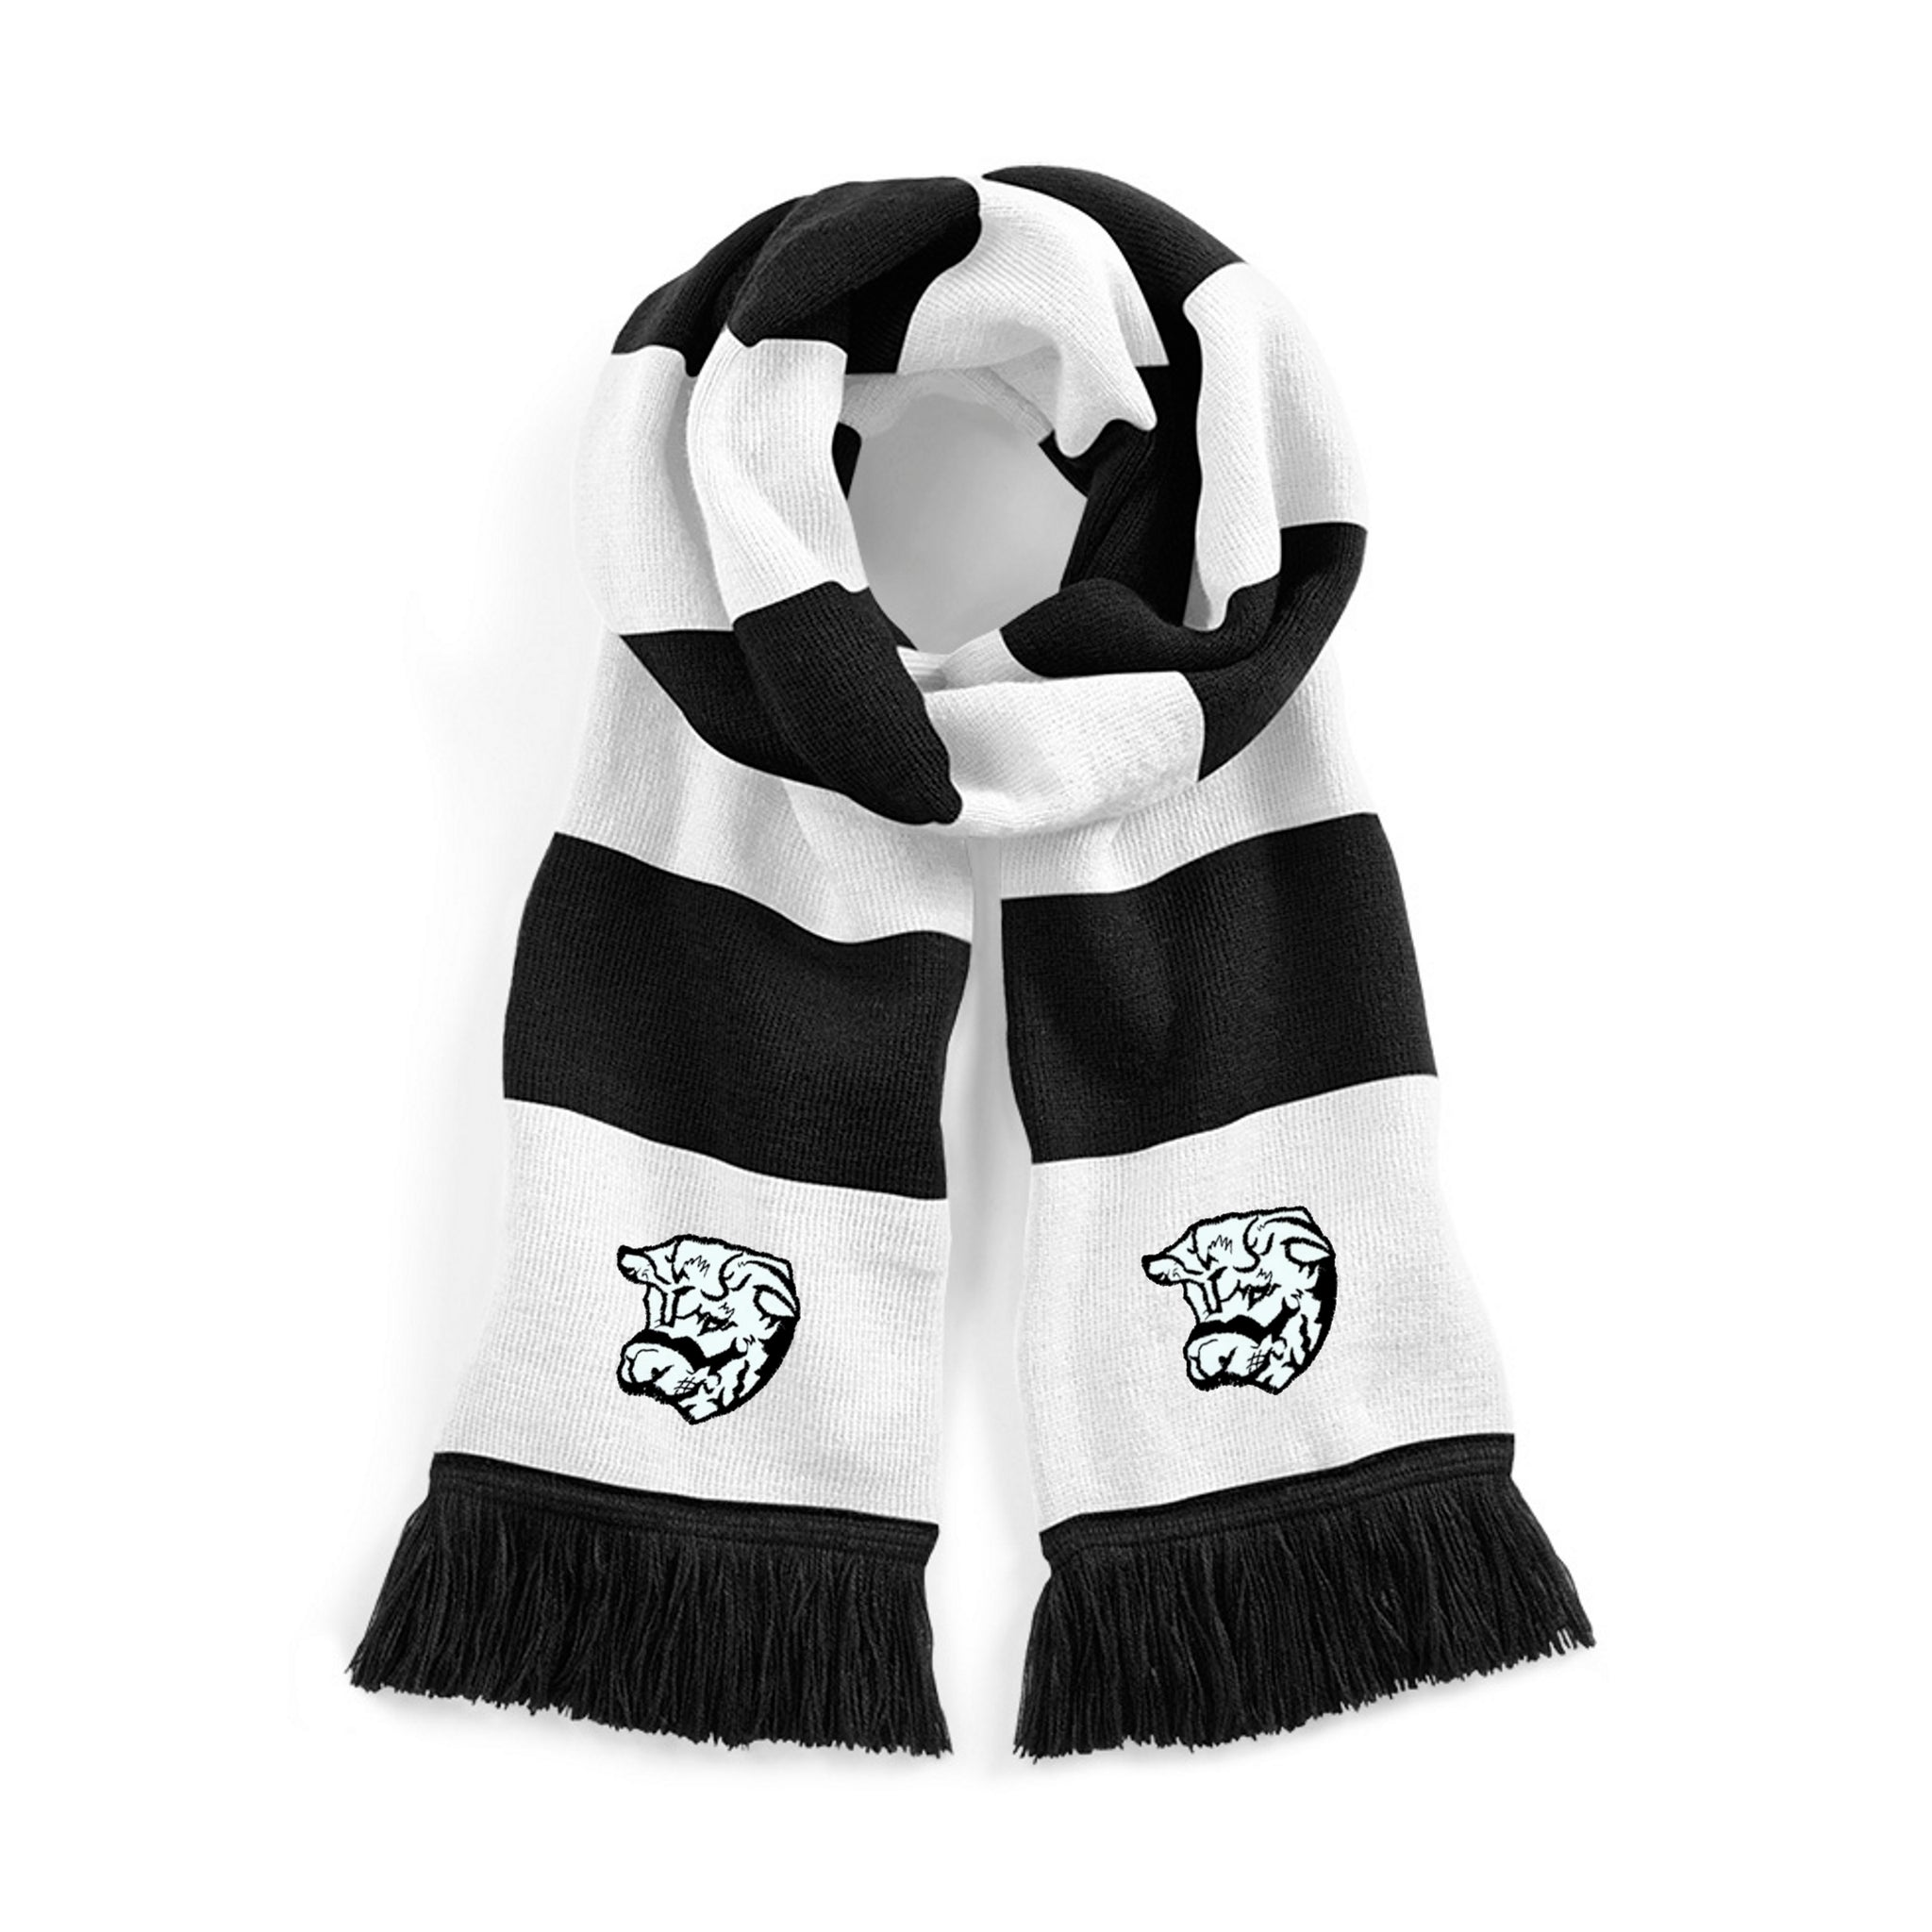 Hereford Retro 1960s Traditional Football Scarf - Scarf